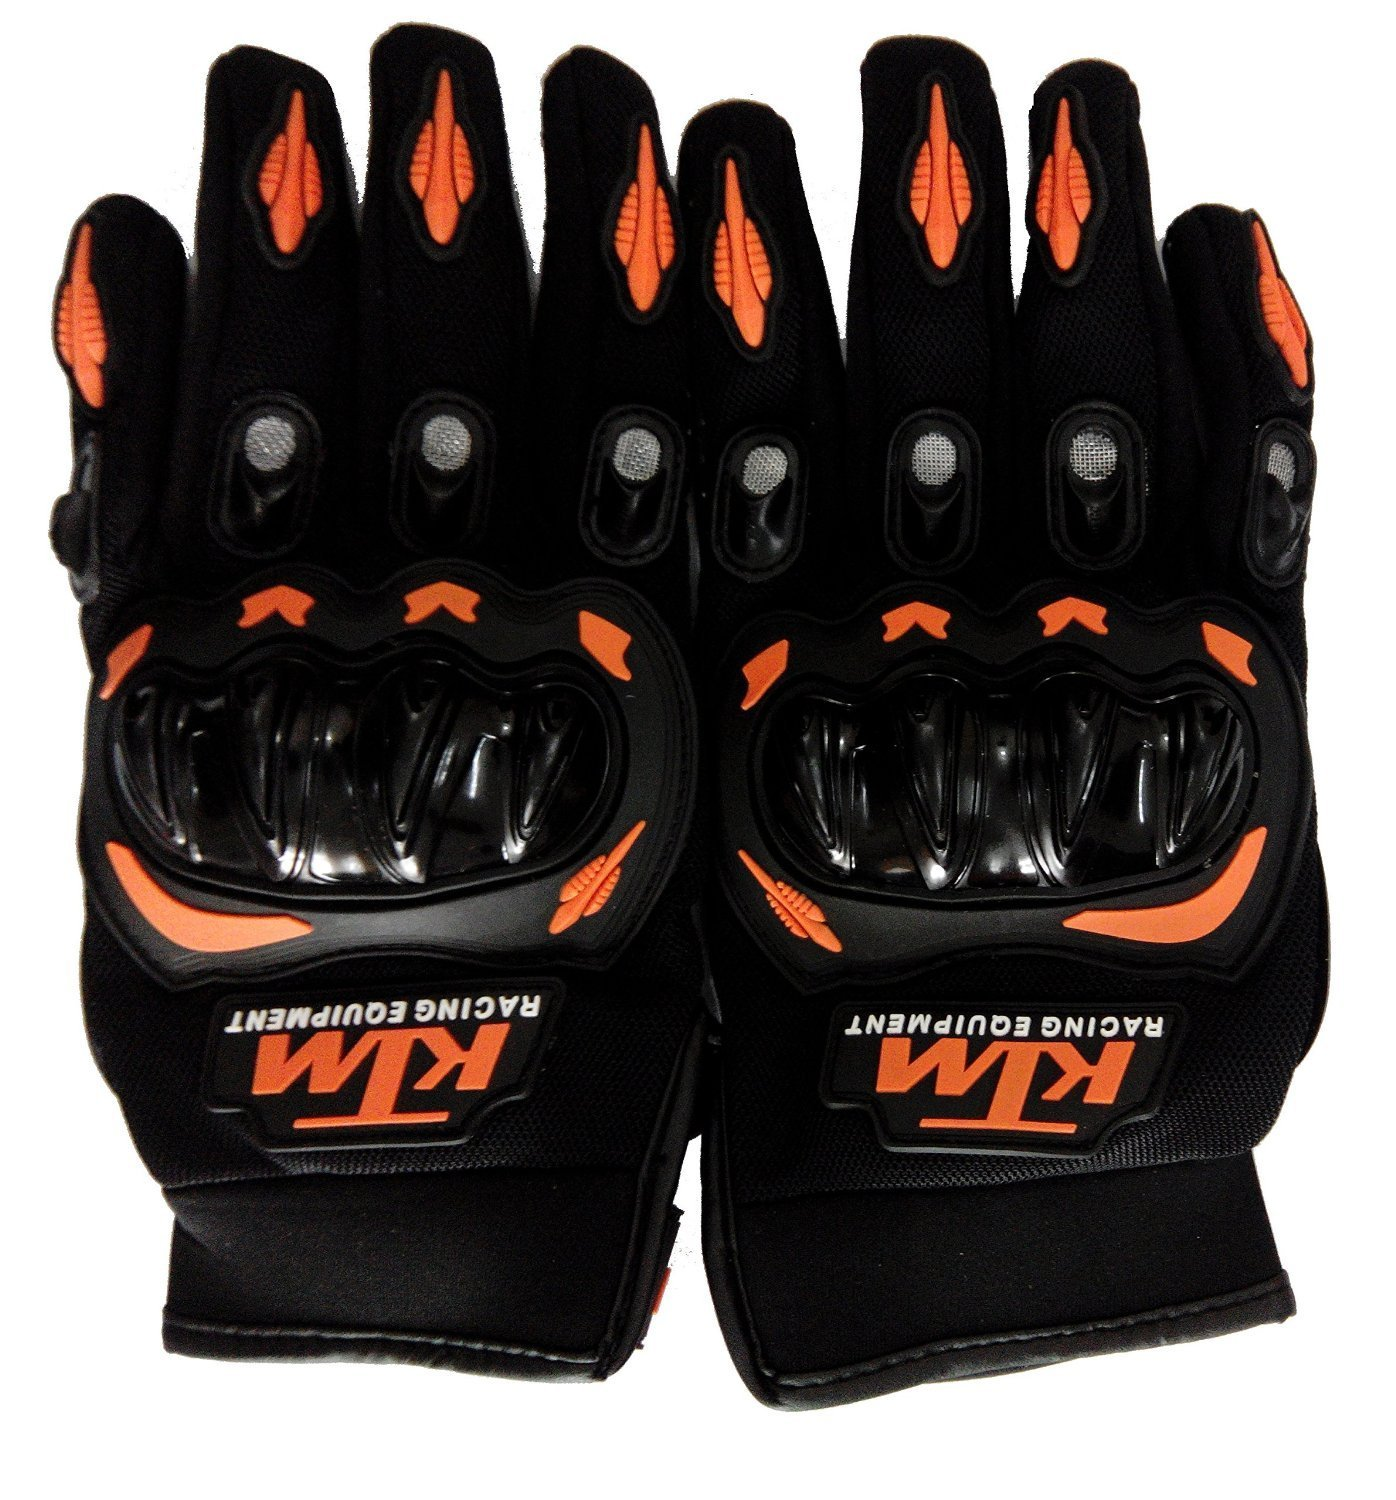 Motorcycle leather gloves india - Leebo Ktm Gloves Orange With Black Colour Xl Size Bike Riders Gloves Motosports Gloves Motorcycle Riding